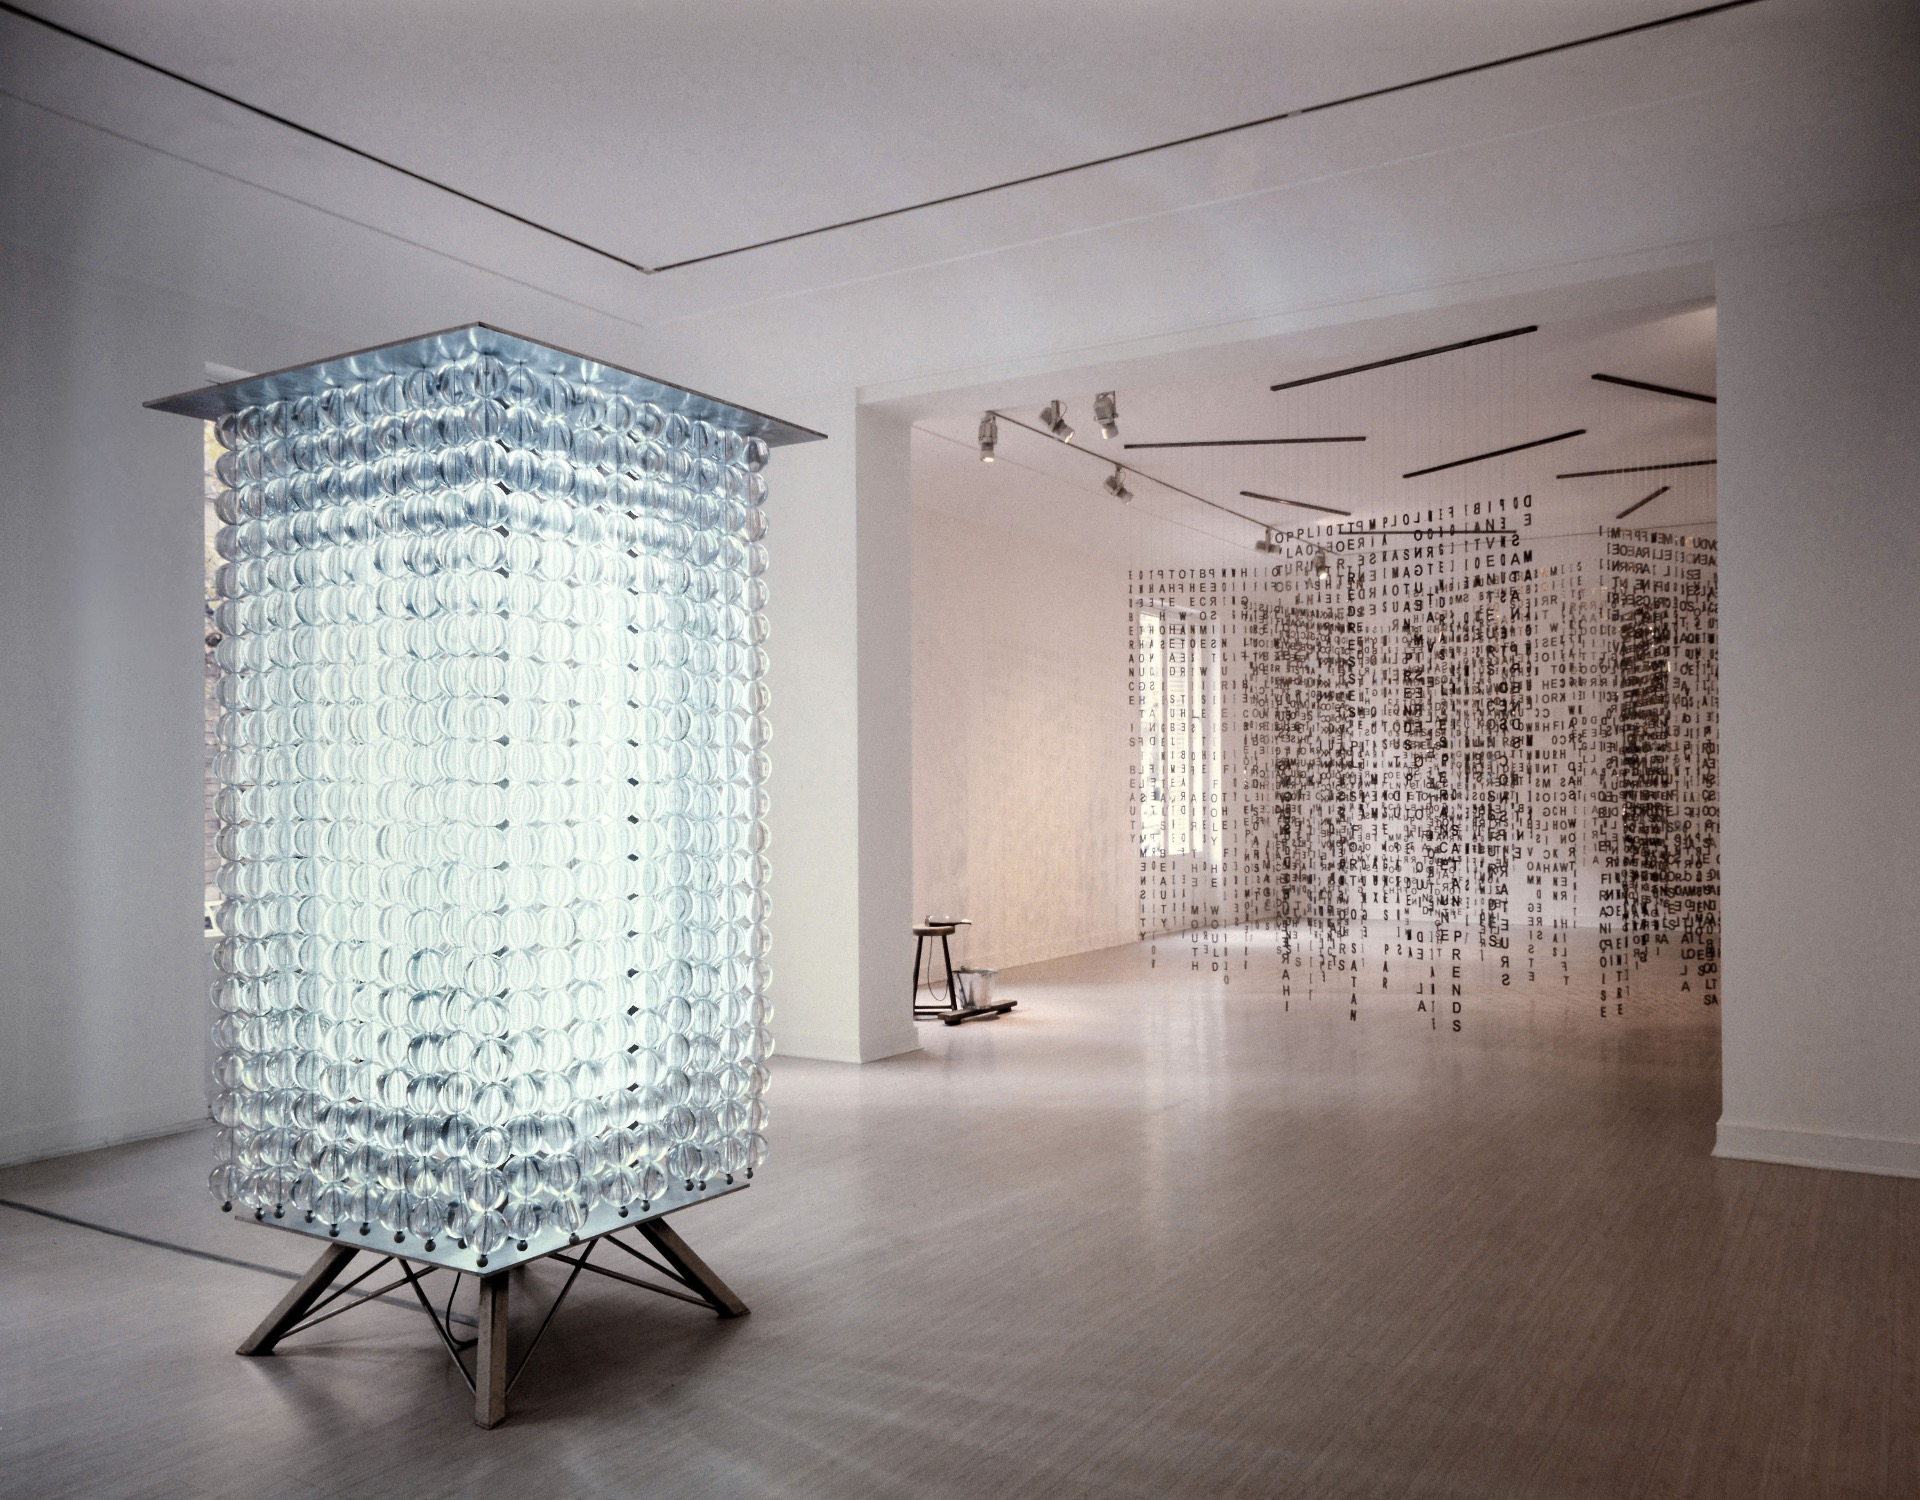 70e193e0fe8af CRYSTAL RAIN Galerie Lelong & Co. Paris, France - Exhibitions 2003 ...